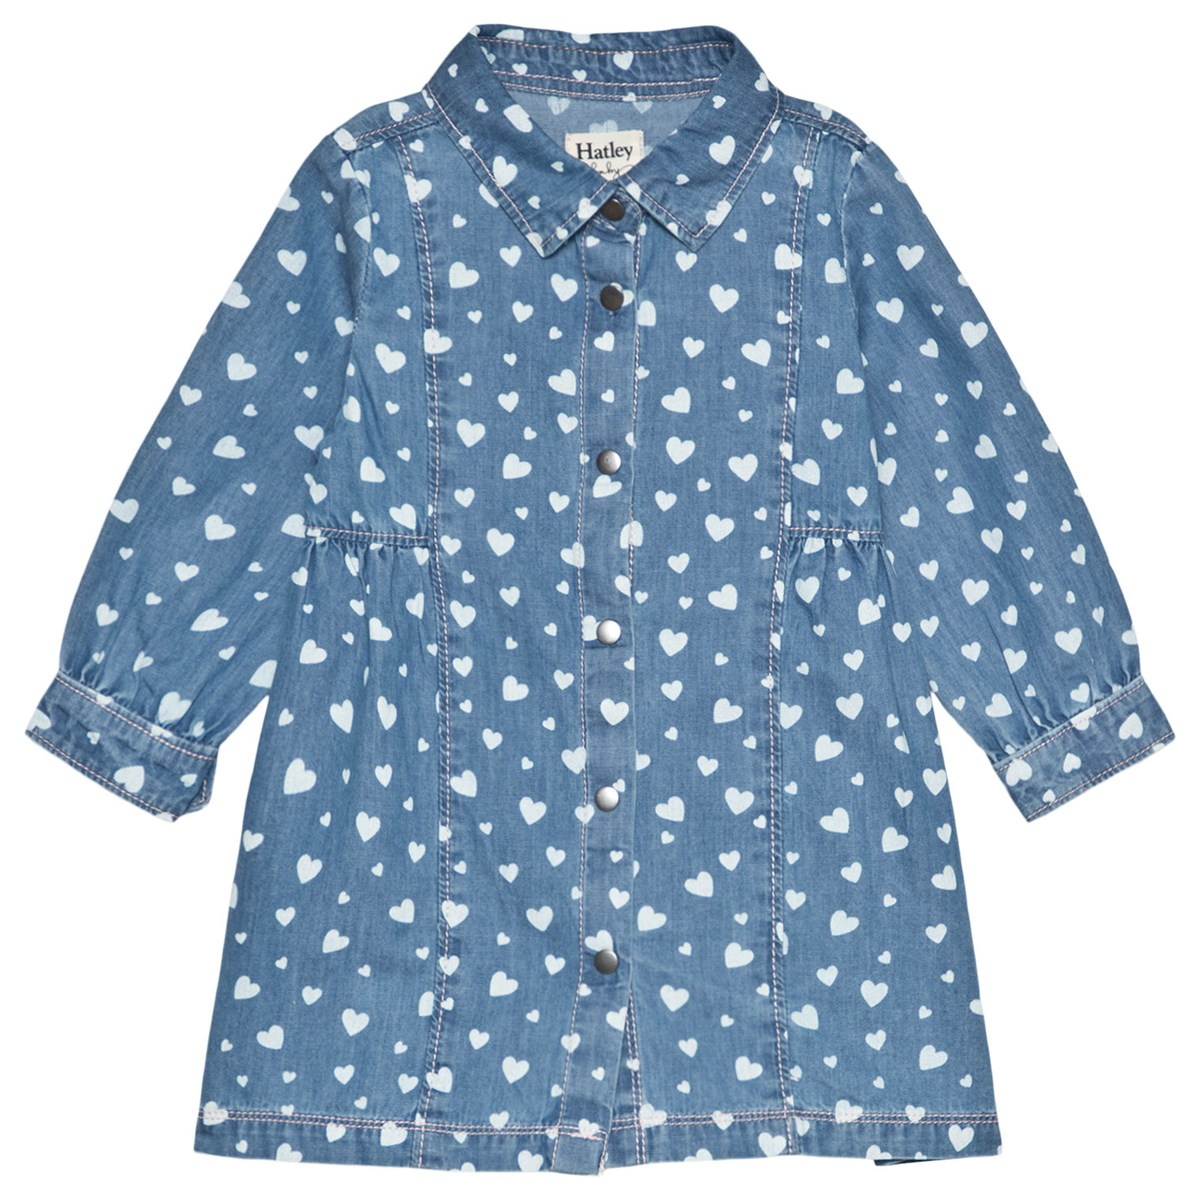 Hatley Heart Cluster Baby Denim Dress